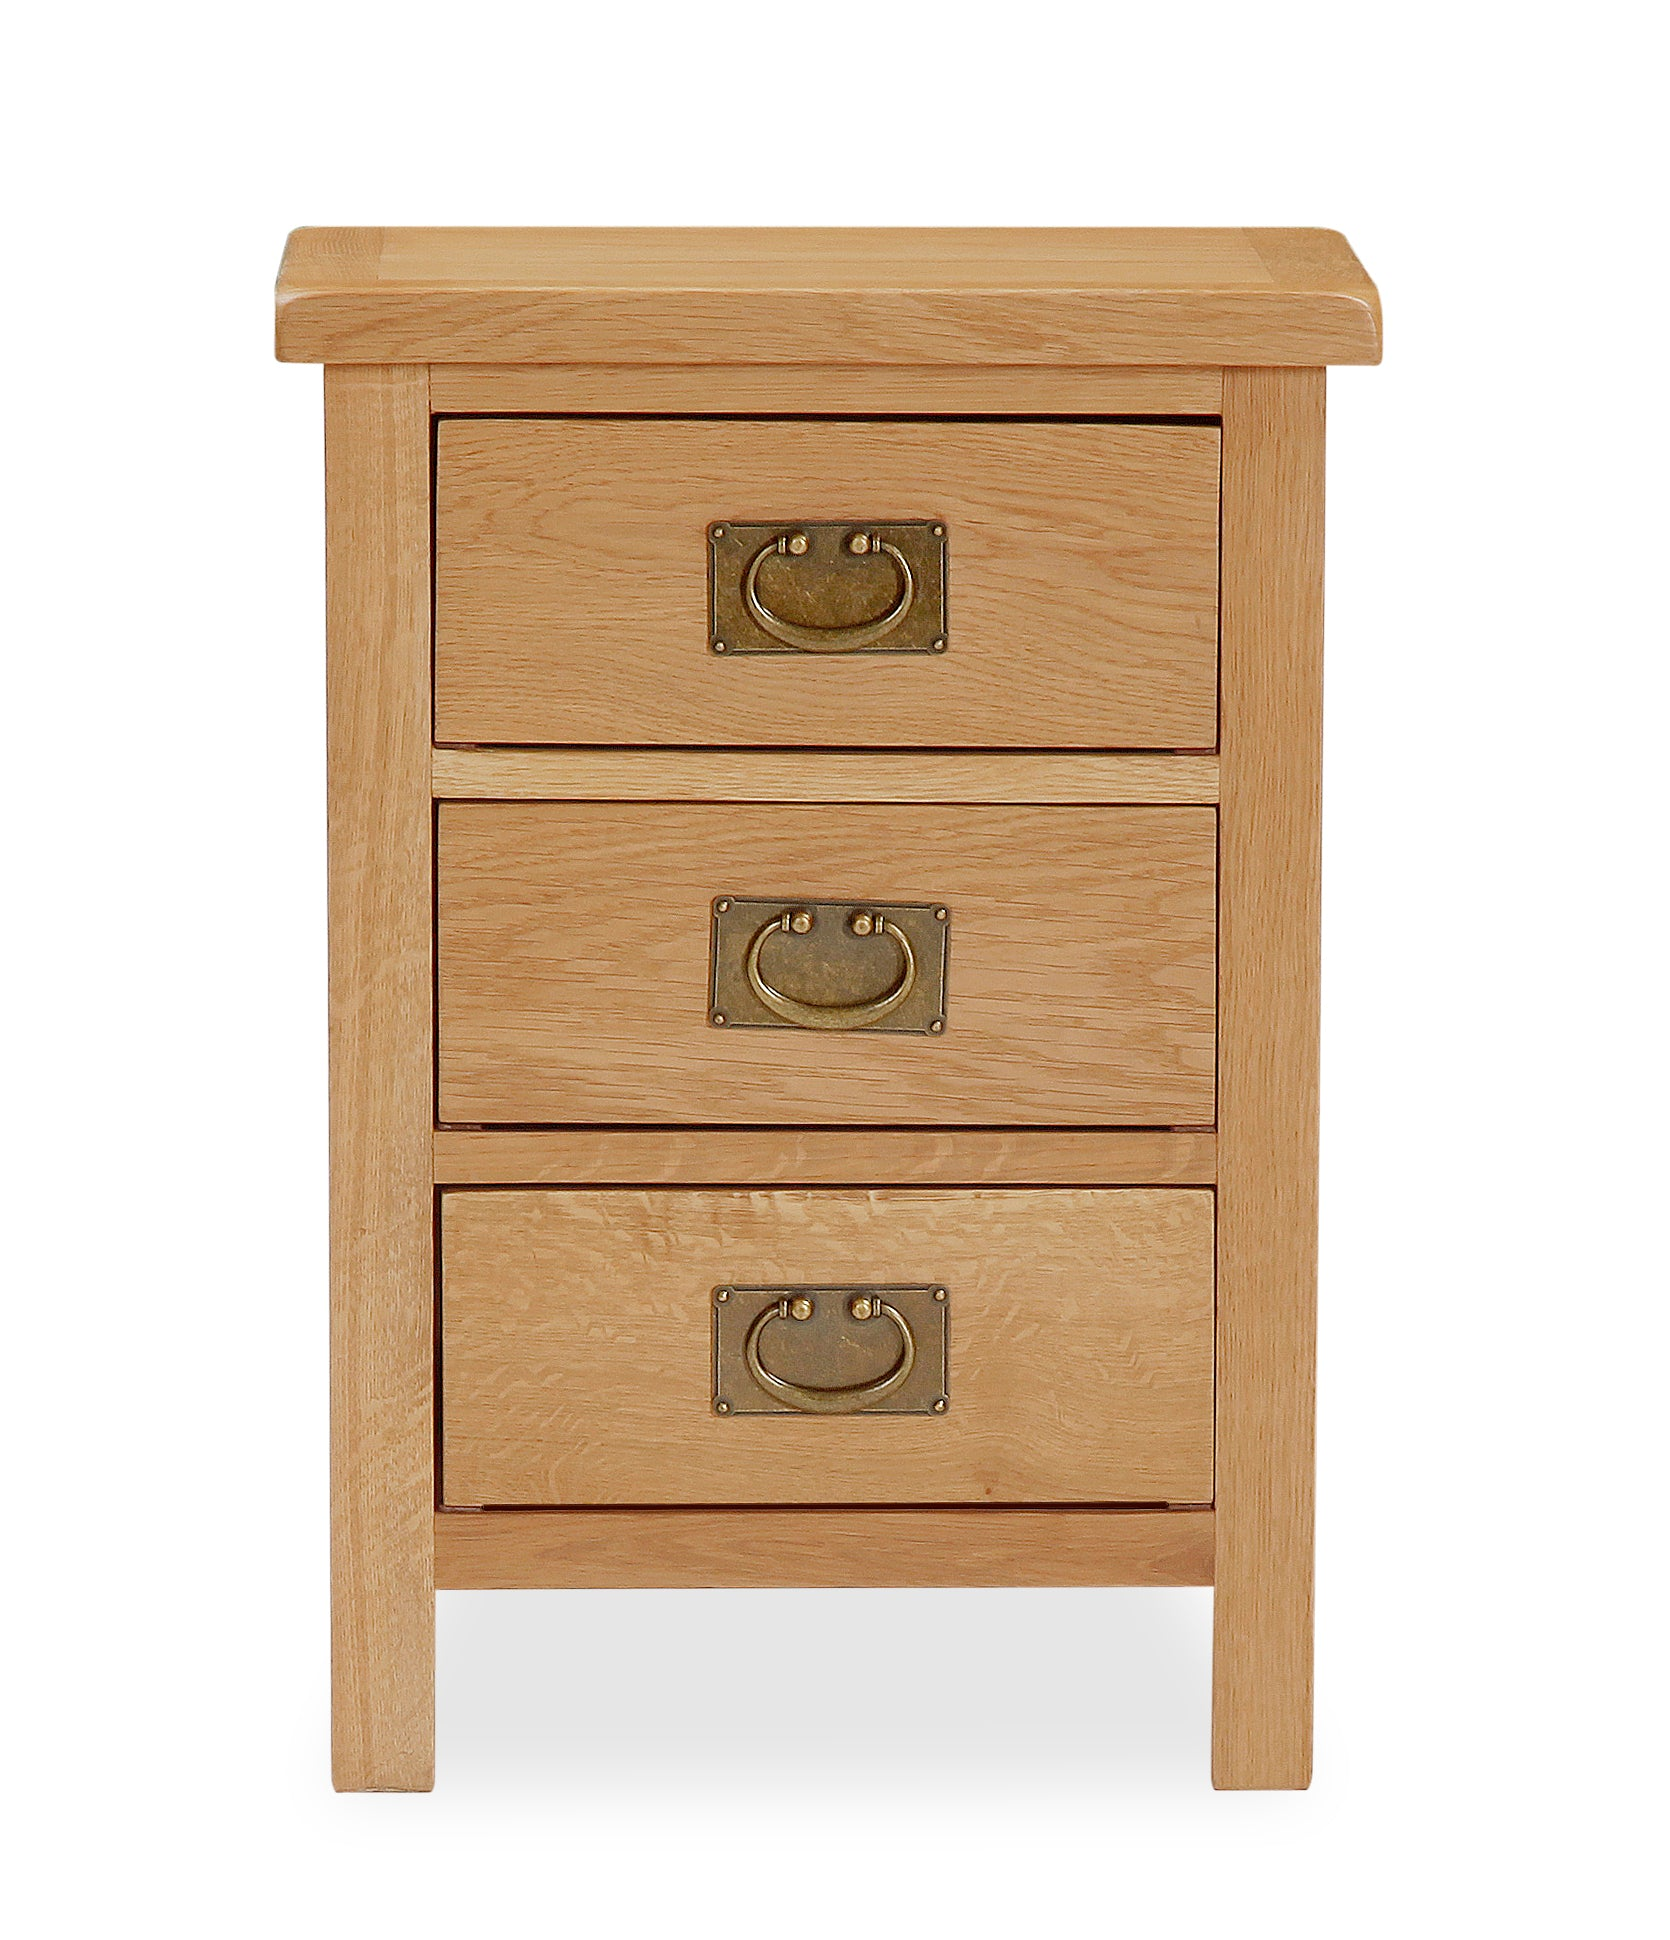 Essential Lite Oak 3 Drawer Bedside